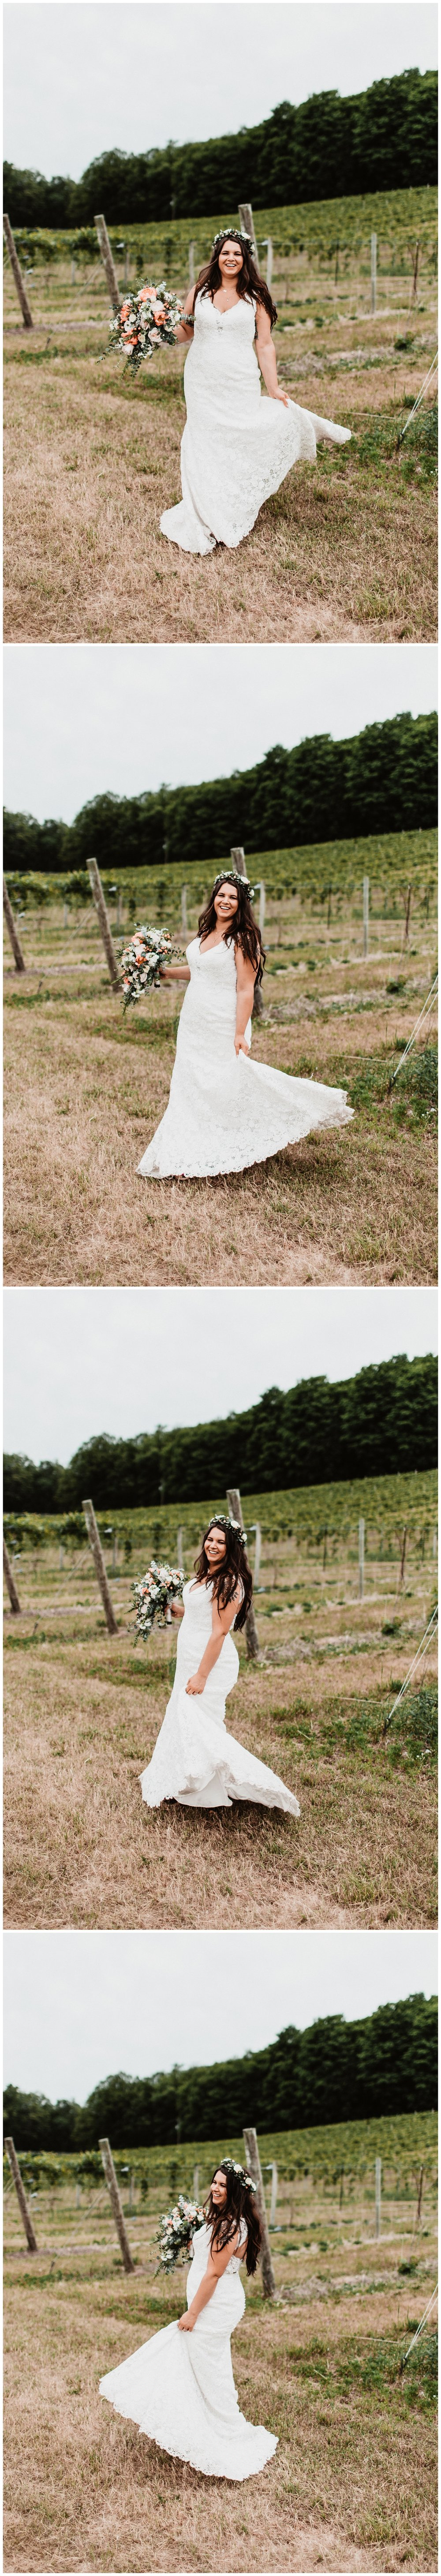 Northern_Michigan_Vineyard_Wedding_Nashville_Wedding_Photographer0105.jpg